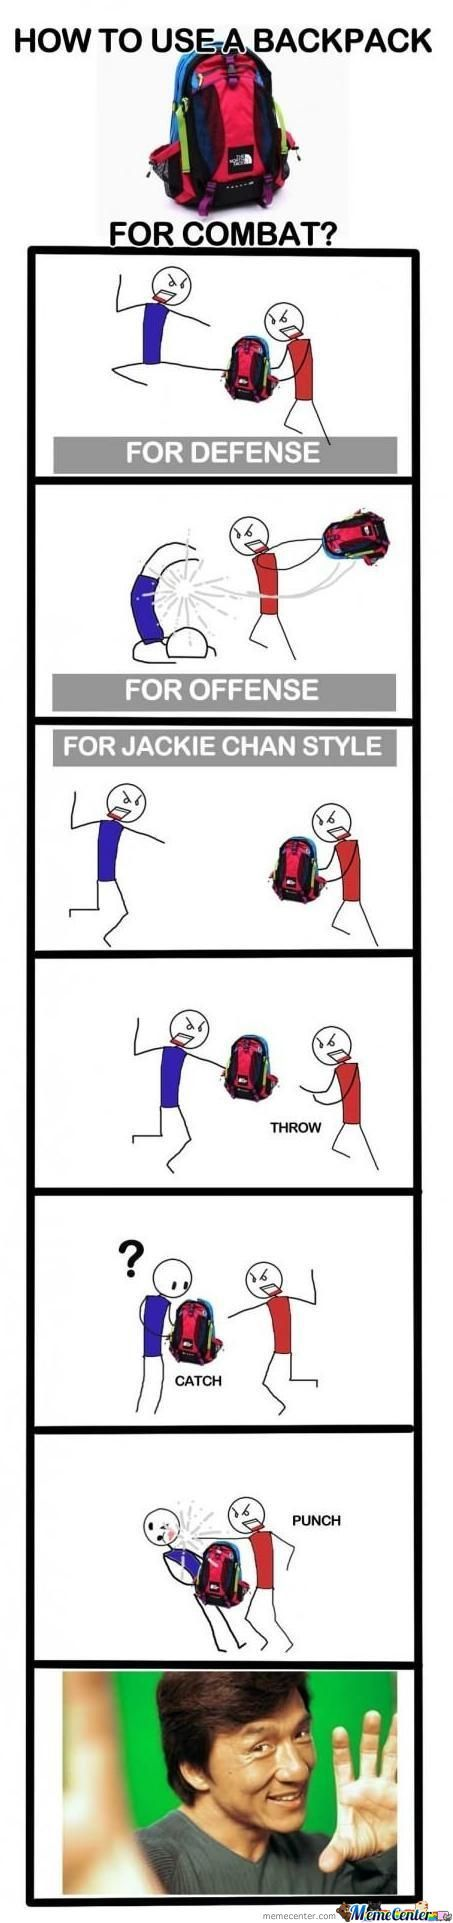 How To Use A Backpack... Like A Ninja